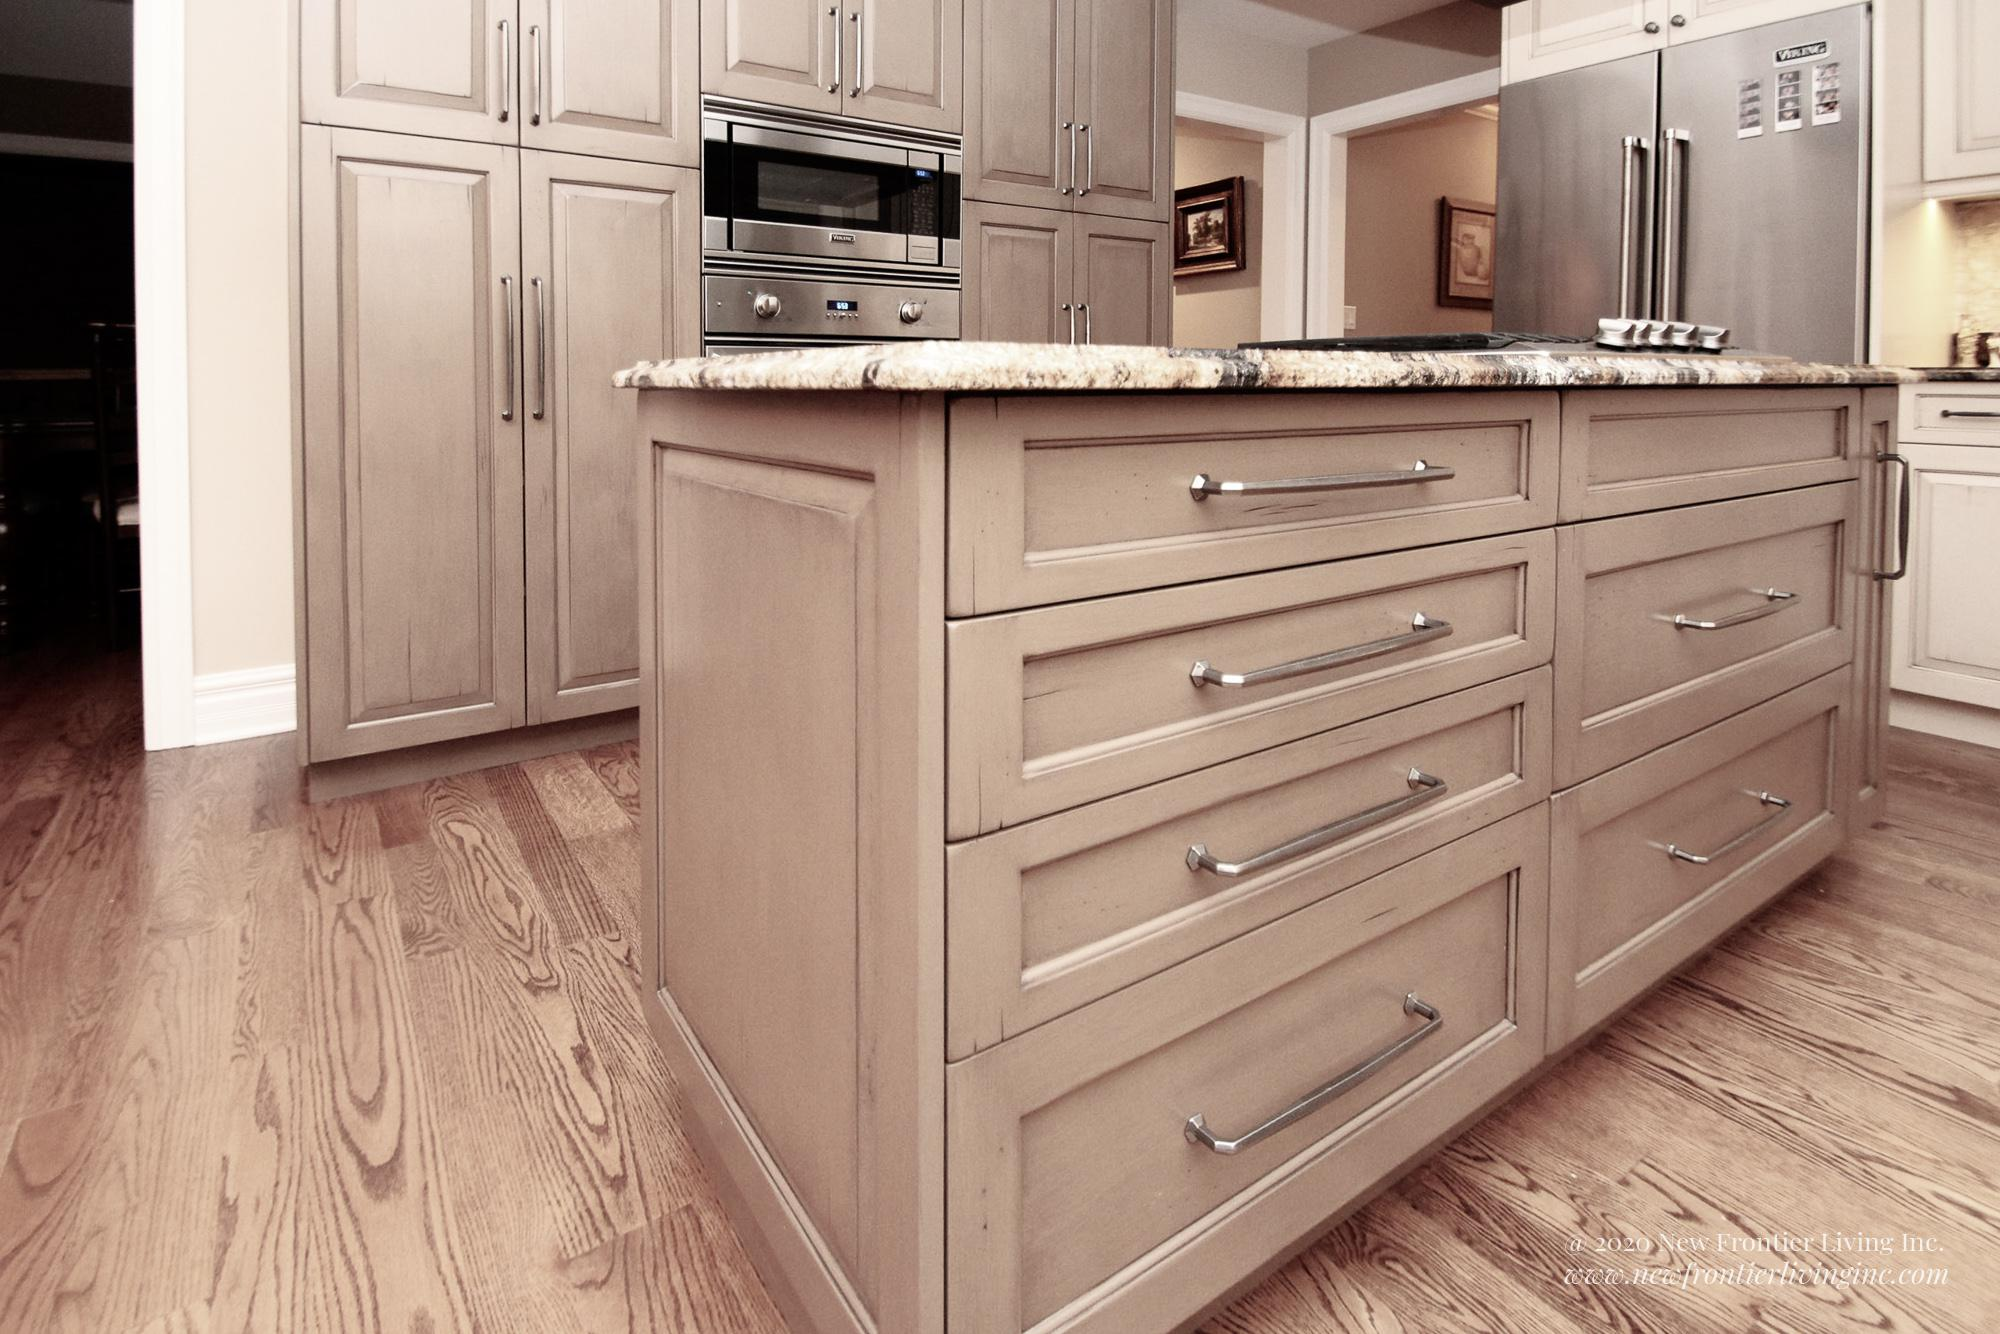 Custom light brown kitchen with island and cabinets, oven and fridge in the back close-up